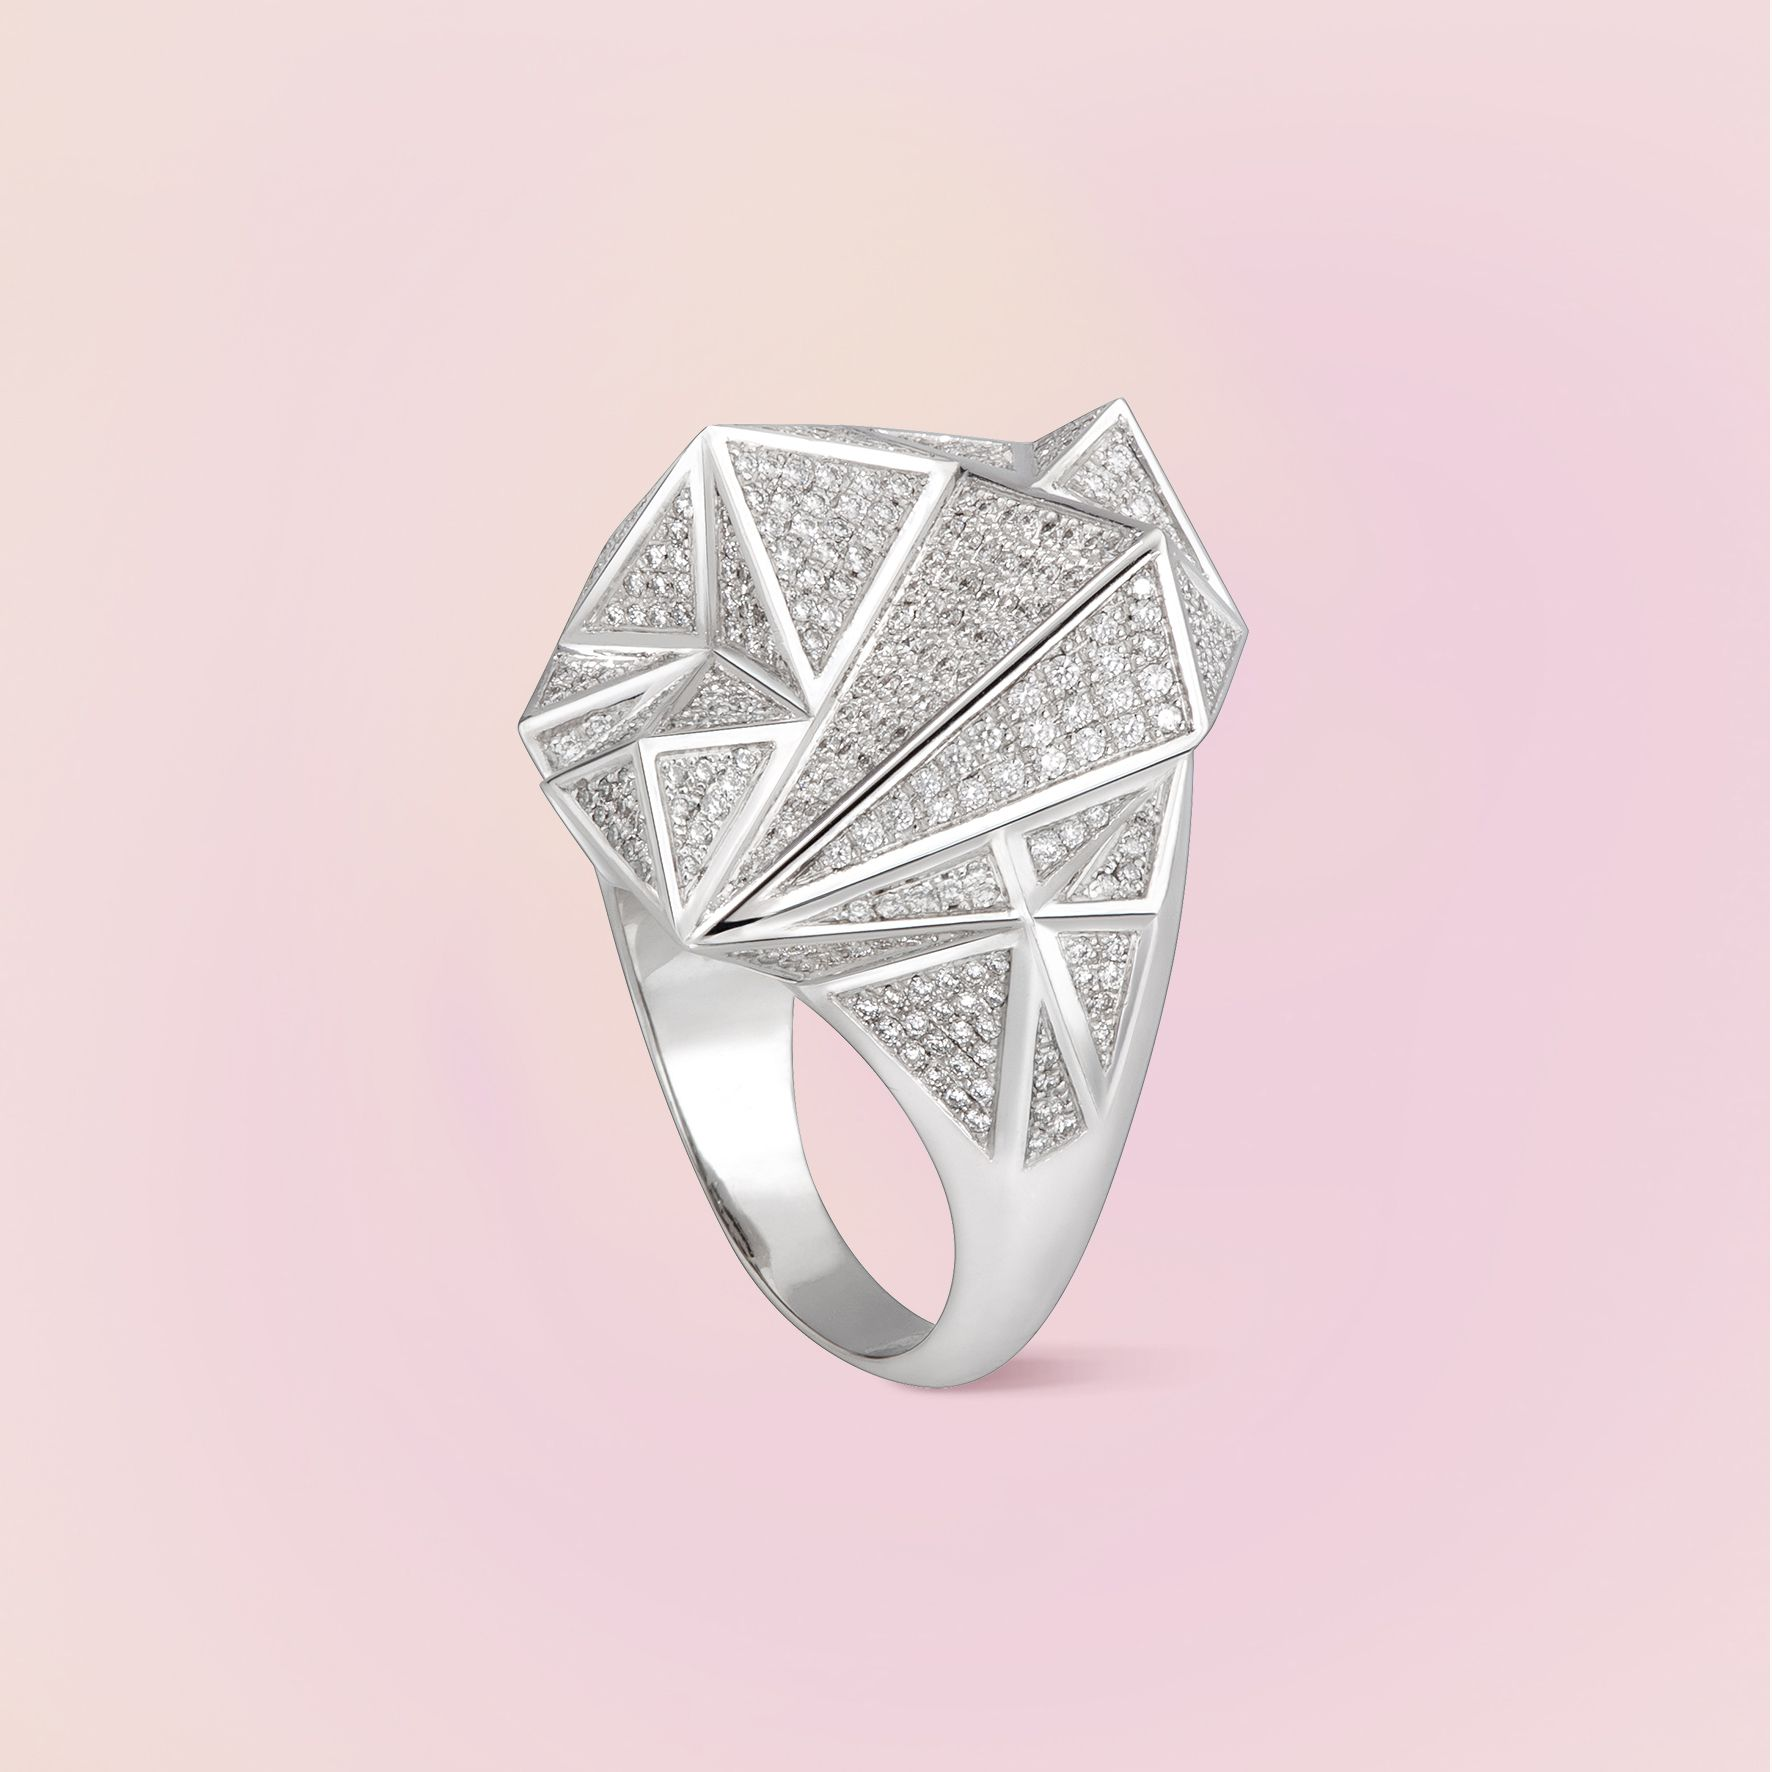 Carrera y Carrera launches its brand new collection called El Retiro. The jewelry collection pays tribute to the splendor of nature throughout the seasons of the year and to the love stories that unfold in parks like El Retiro in Madrid. Picture: Invierno maxi ring